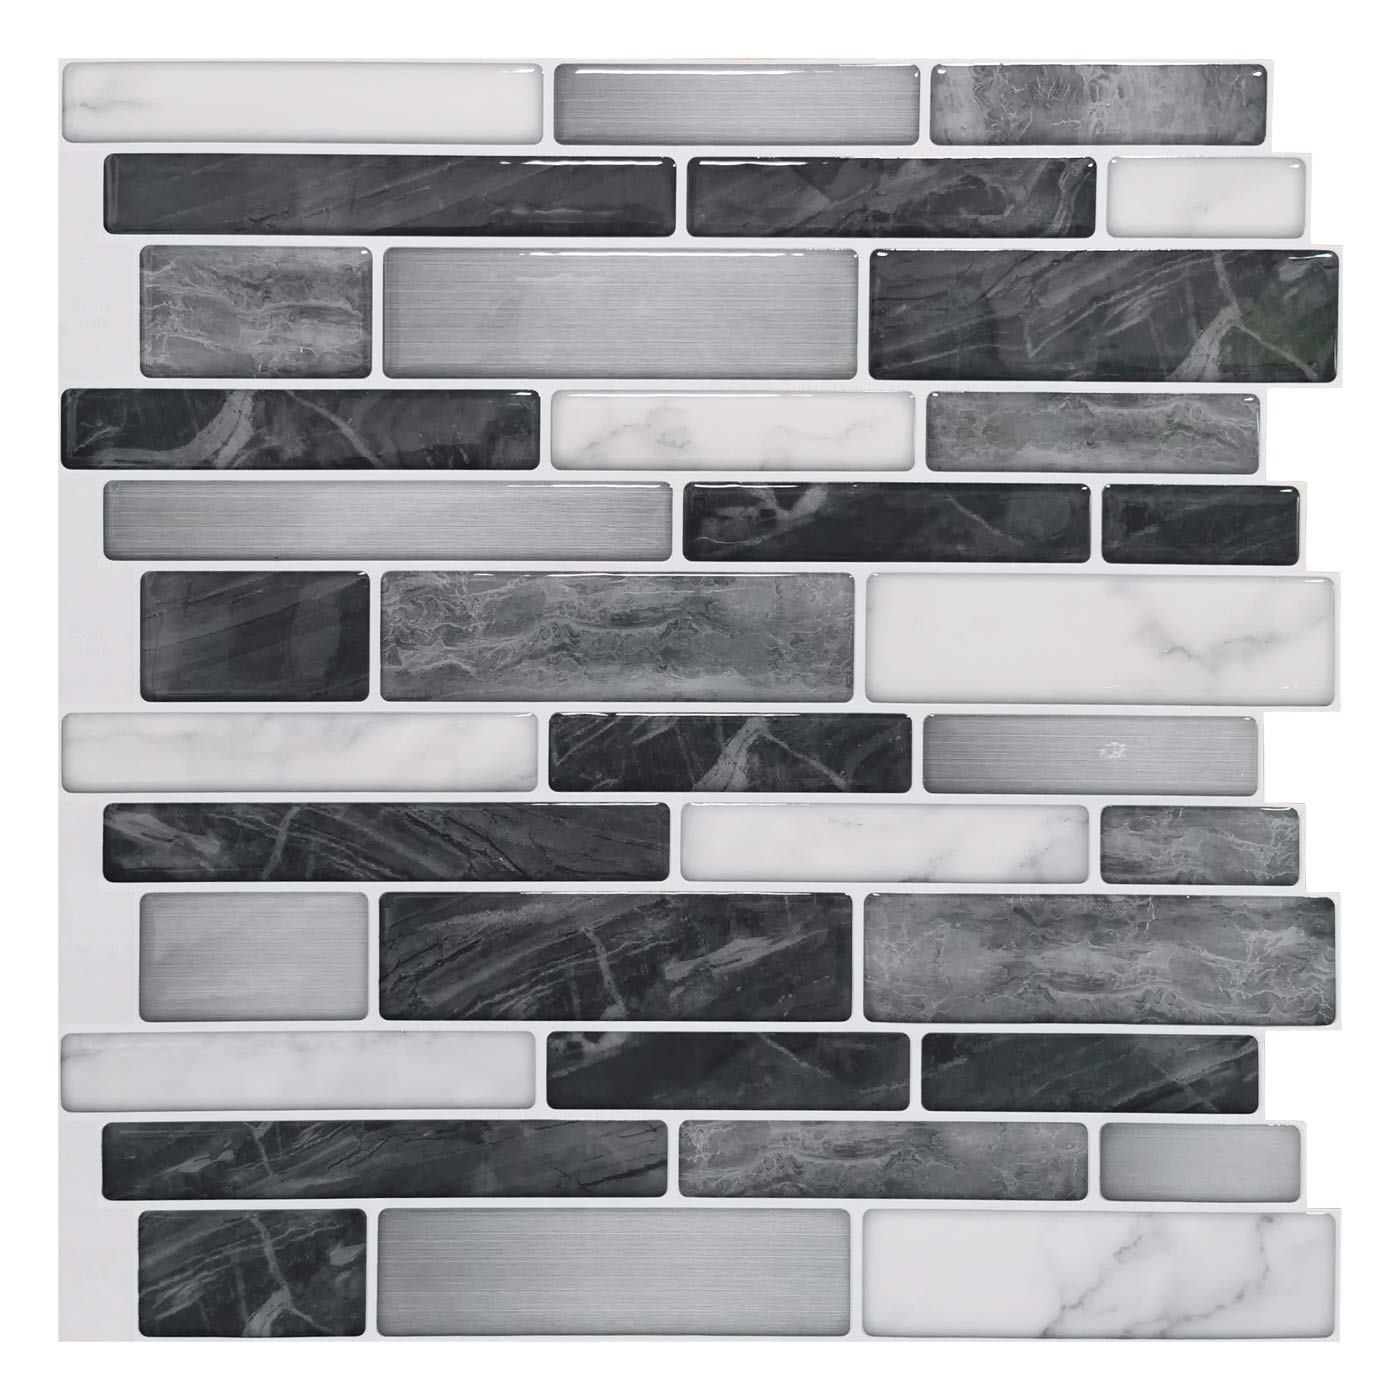 "Art3d 10-Sheet Self-Adhesive Tile Backsplash for Kitchen, Vinyl Decorative Tiles, 12""x12"""